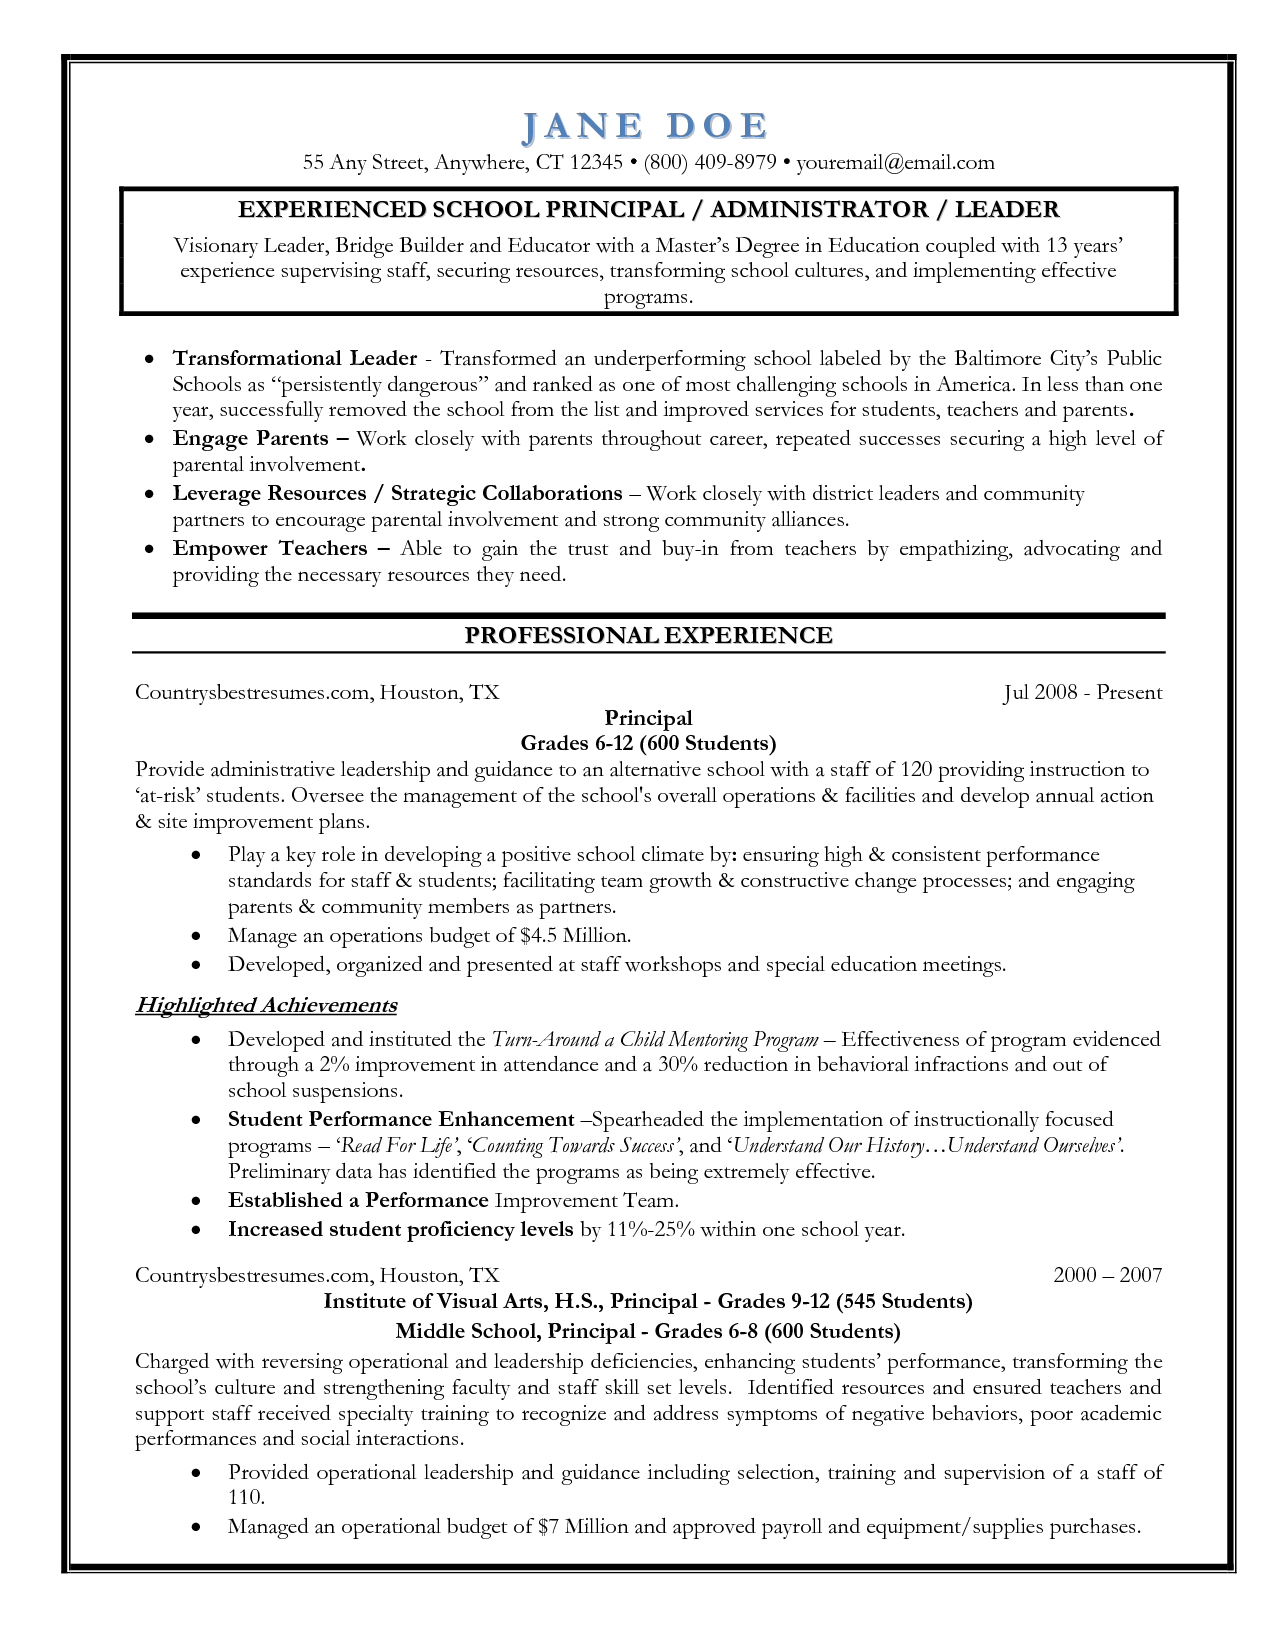 Templates For A Resume Entry Level Assistant Principal Resume